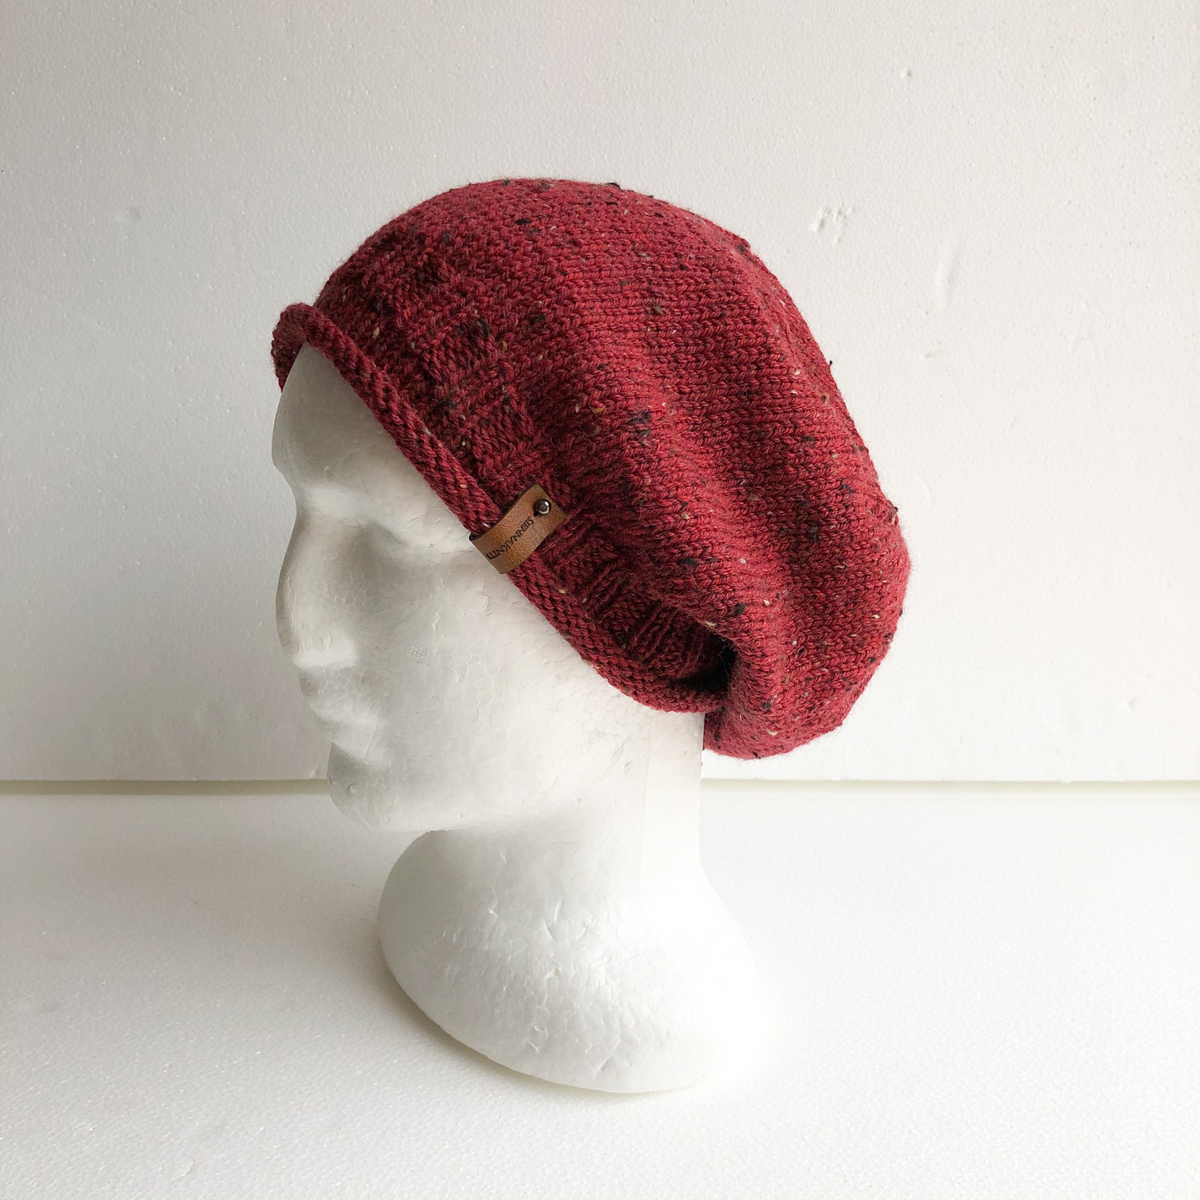 Speckled Red Knit Women Slouchy Beanie With Roll Up Brim By SiennaKnits